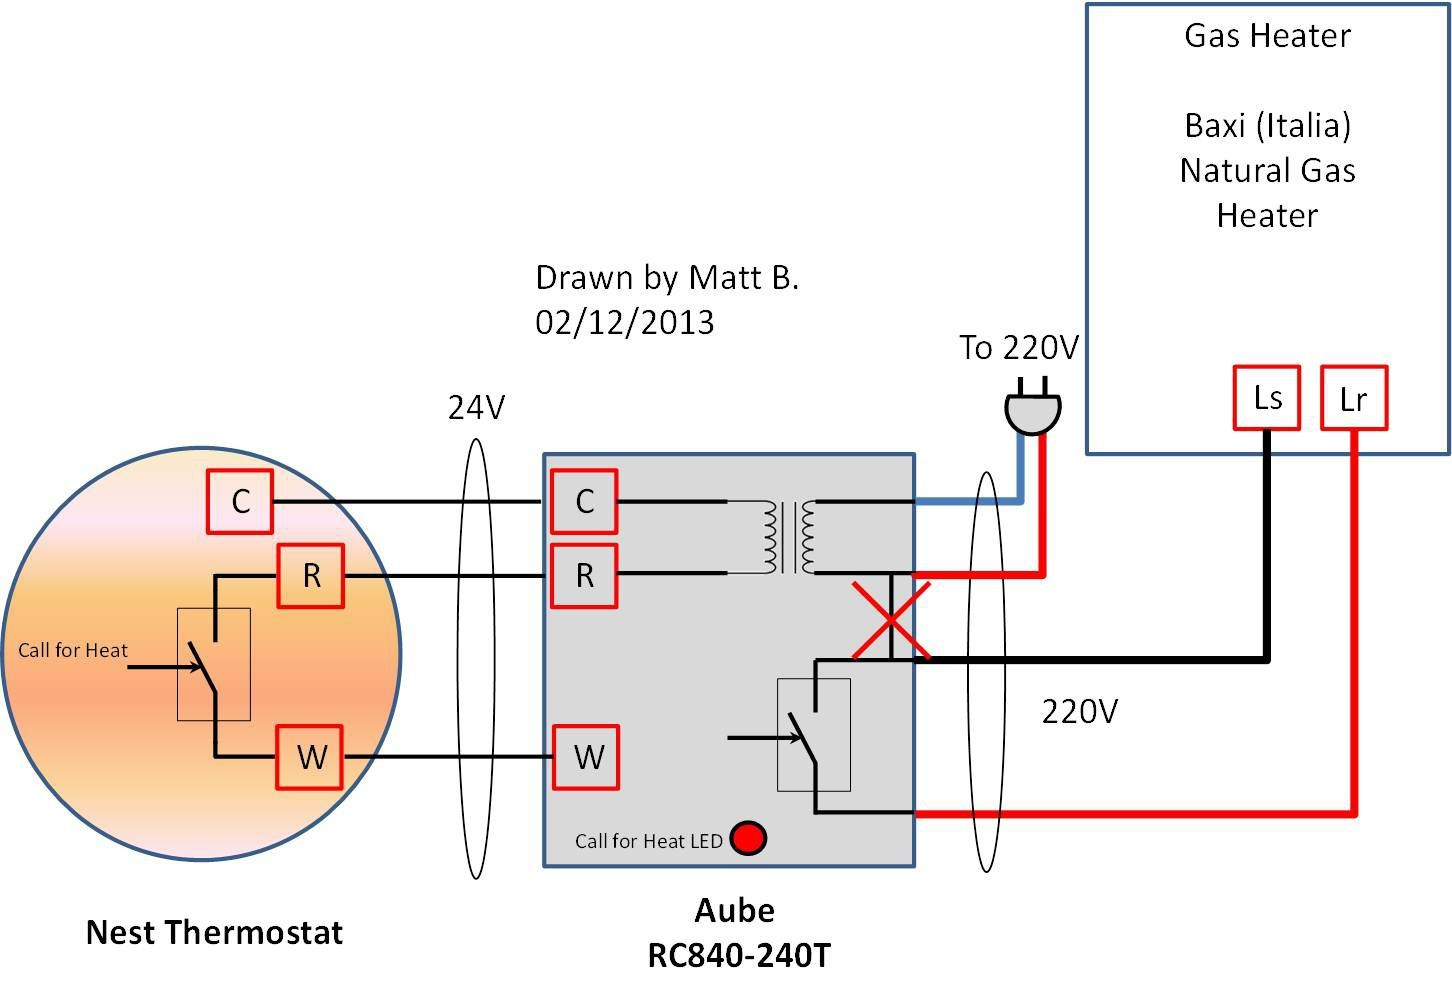 Nest Thermostat Wiring Diagram Uk | Wiring Diagram - Nest Thermostat Wiring Diagram Heat And Cool Diagram